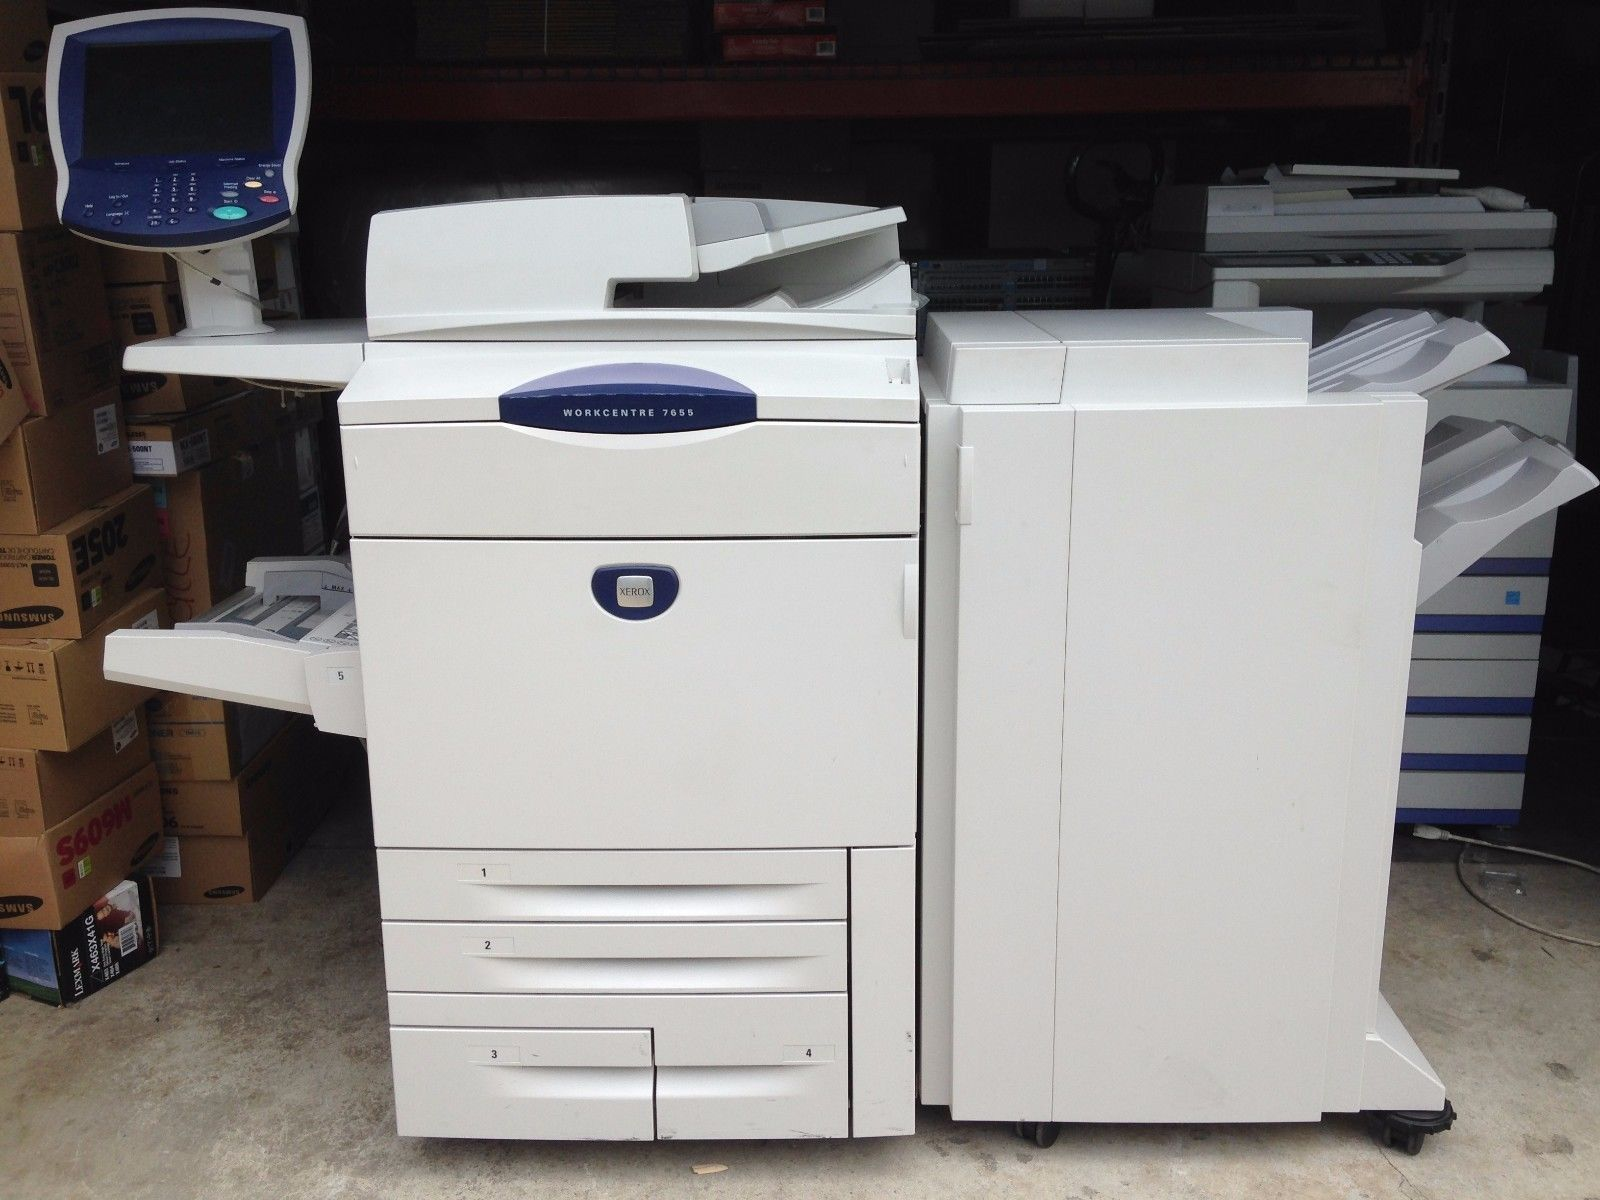 XEROX 7655 PRINTER DOWNLOAD DRIVER